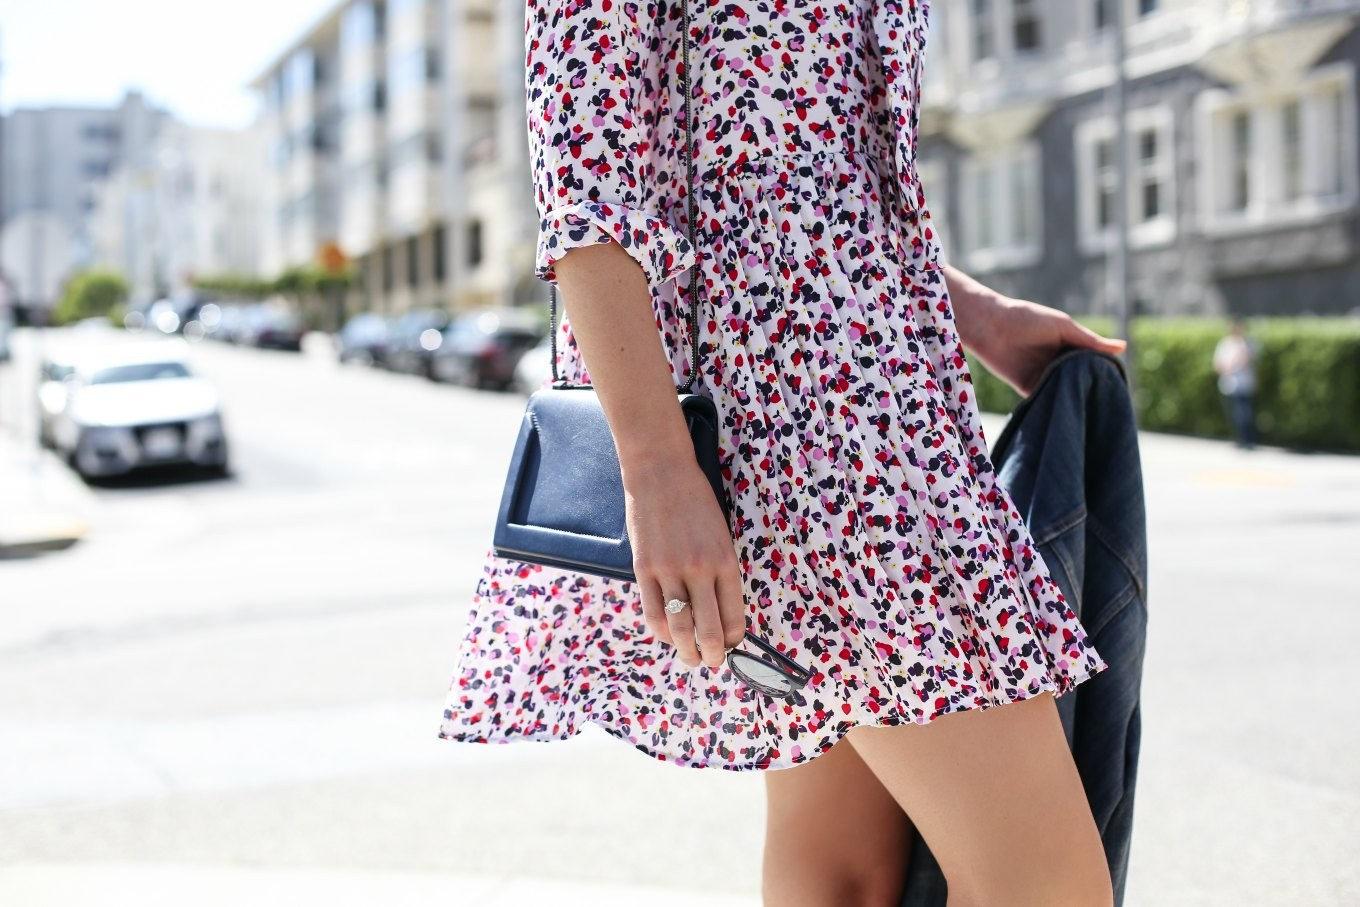 confettie-pink-navy-pleated-drop-waist-tie-neck-dress-navy-suede-wedge-sandals-san-francisco-fashion-style-blog-mary-orton2-680x4542x